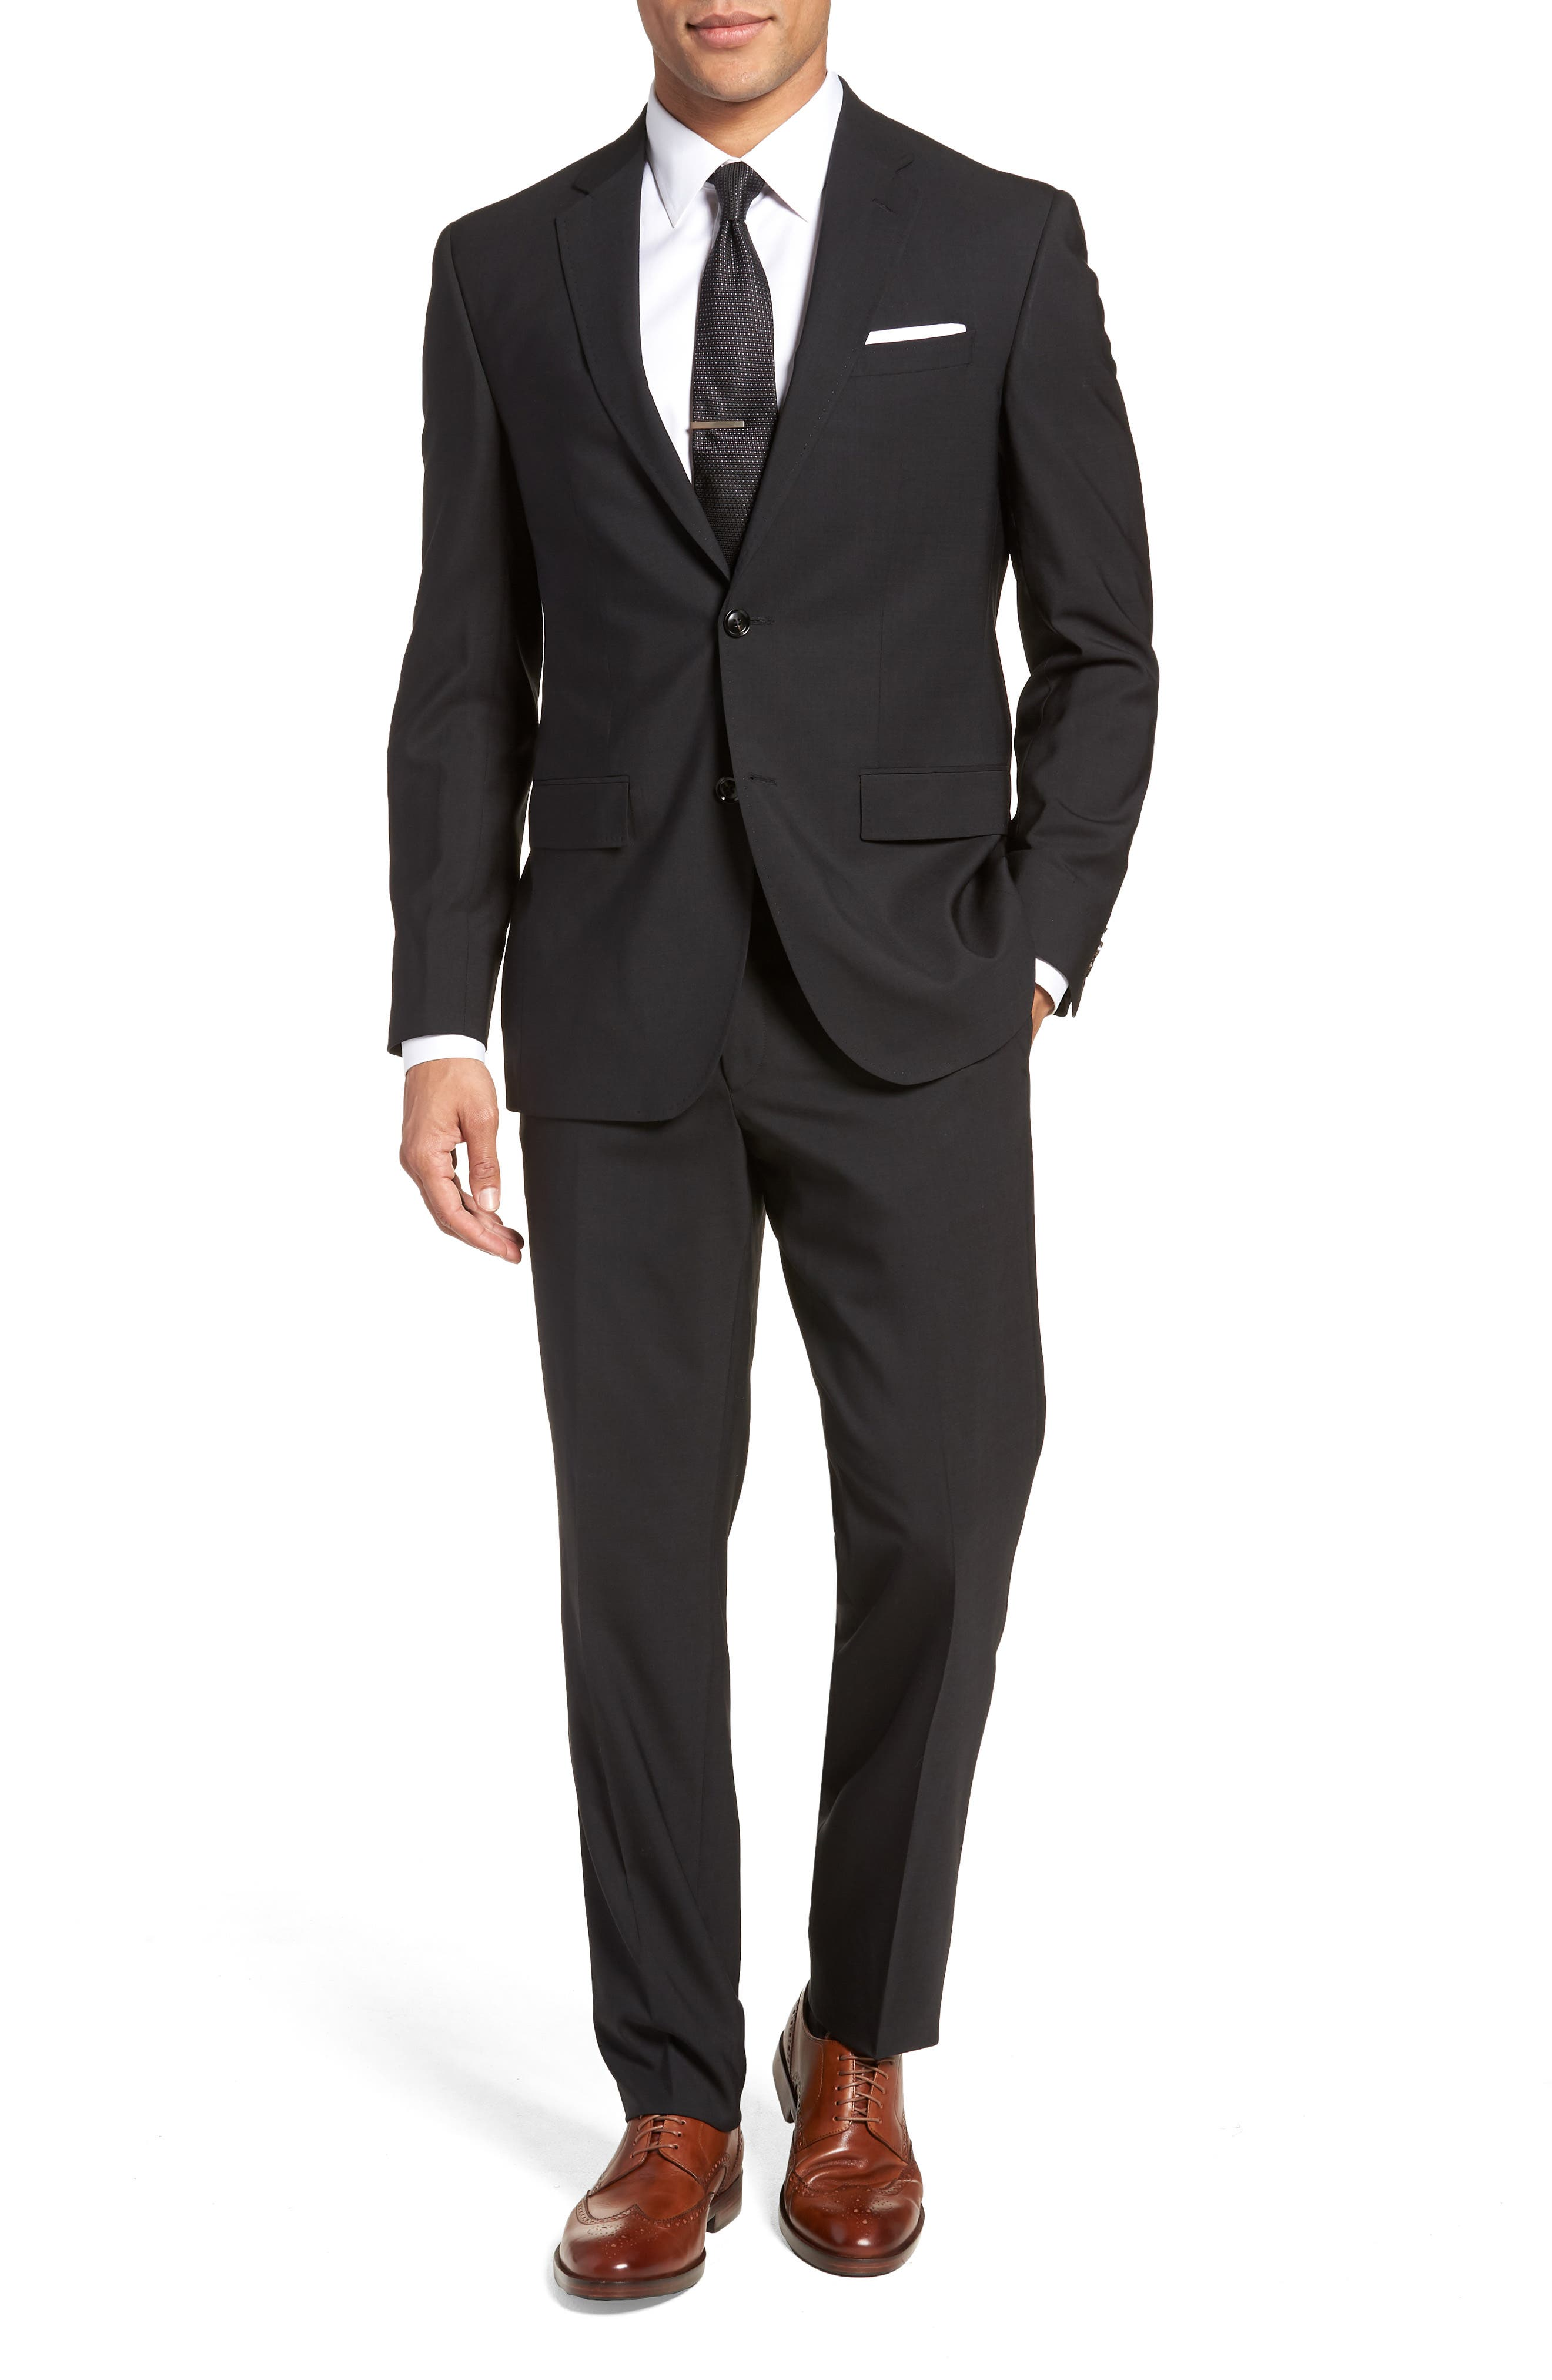 TED BAKER LONDON, Jay Trim Fit Solid Wool Suit, Main thumbnail 1, color, BLACK